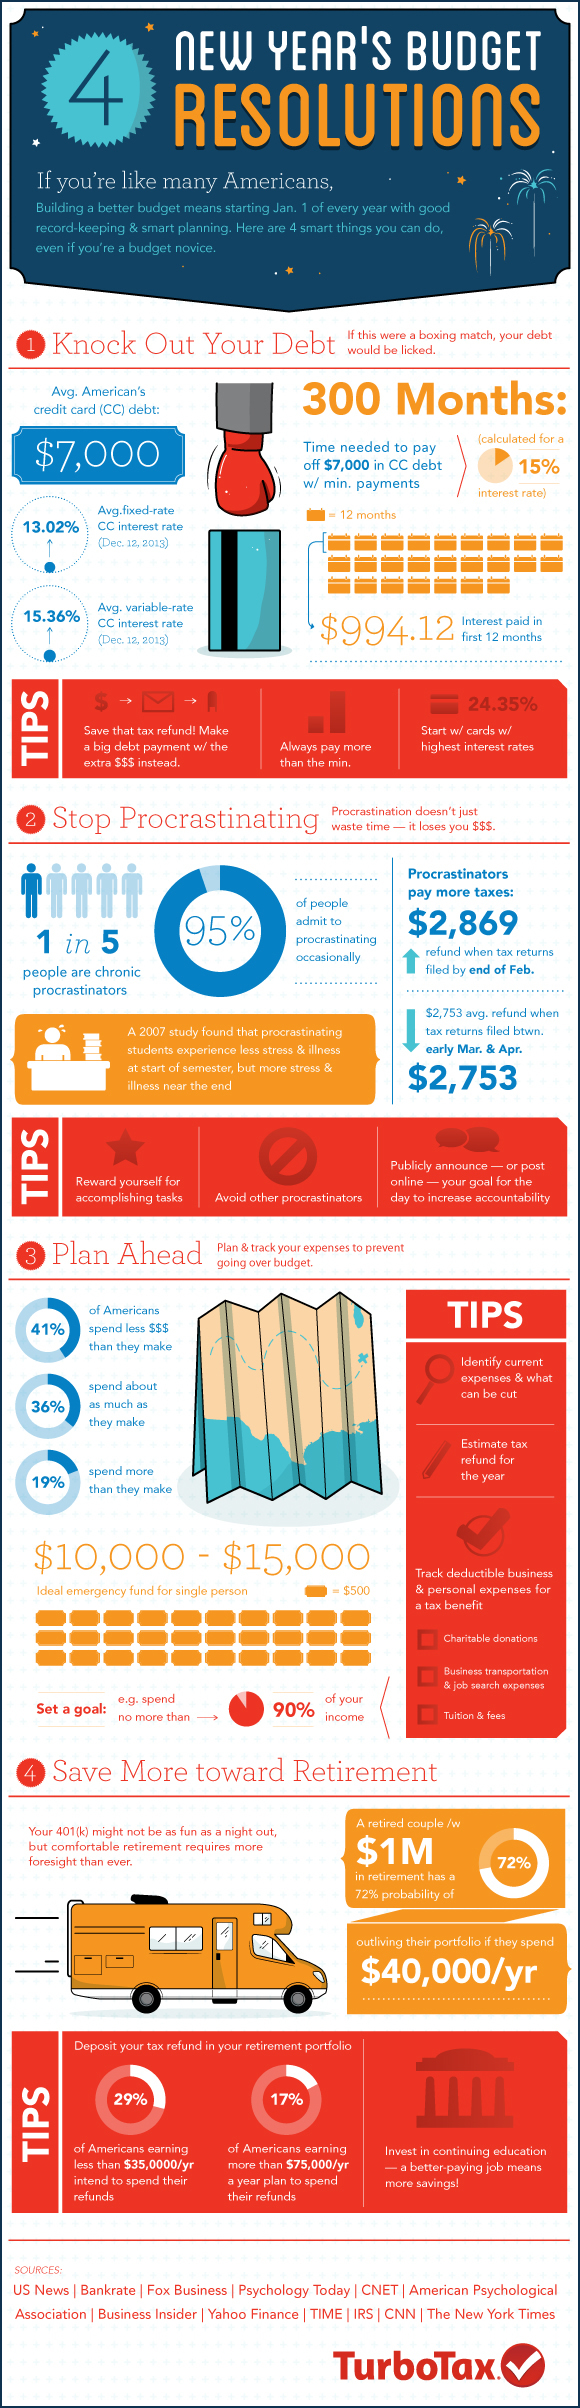 4 New Year's Budget Resolutions (an Infographic)